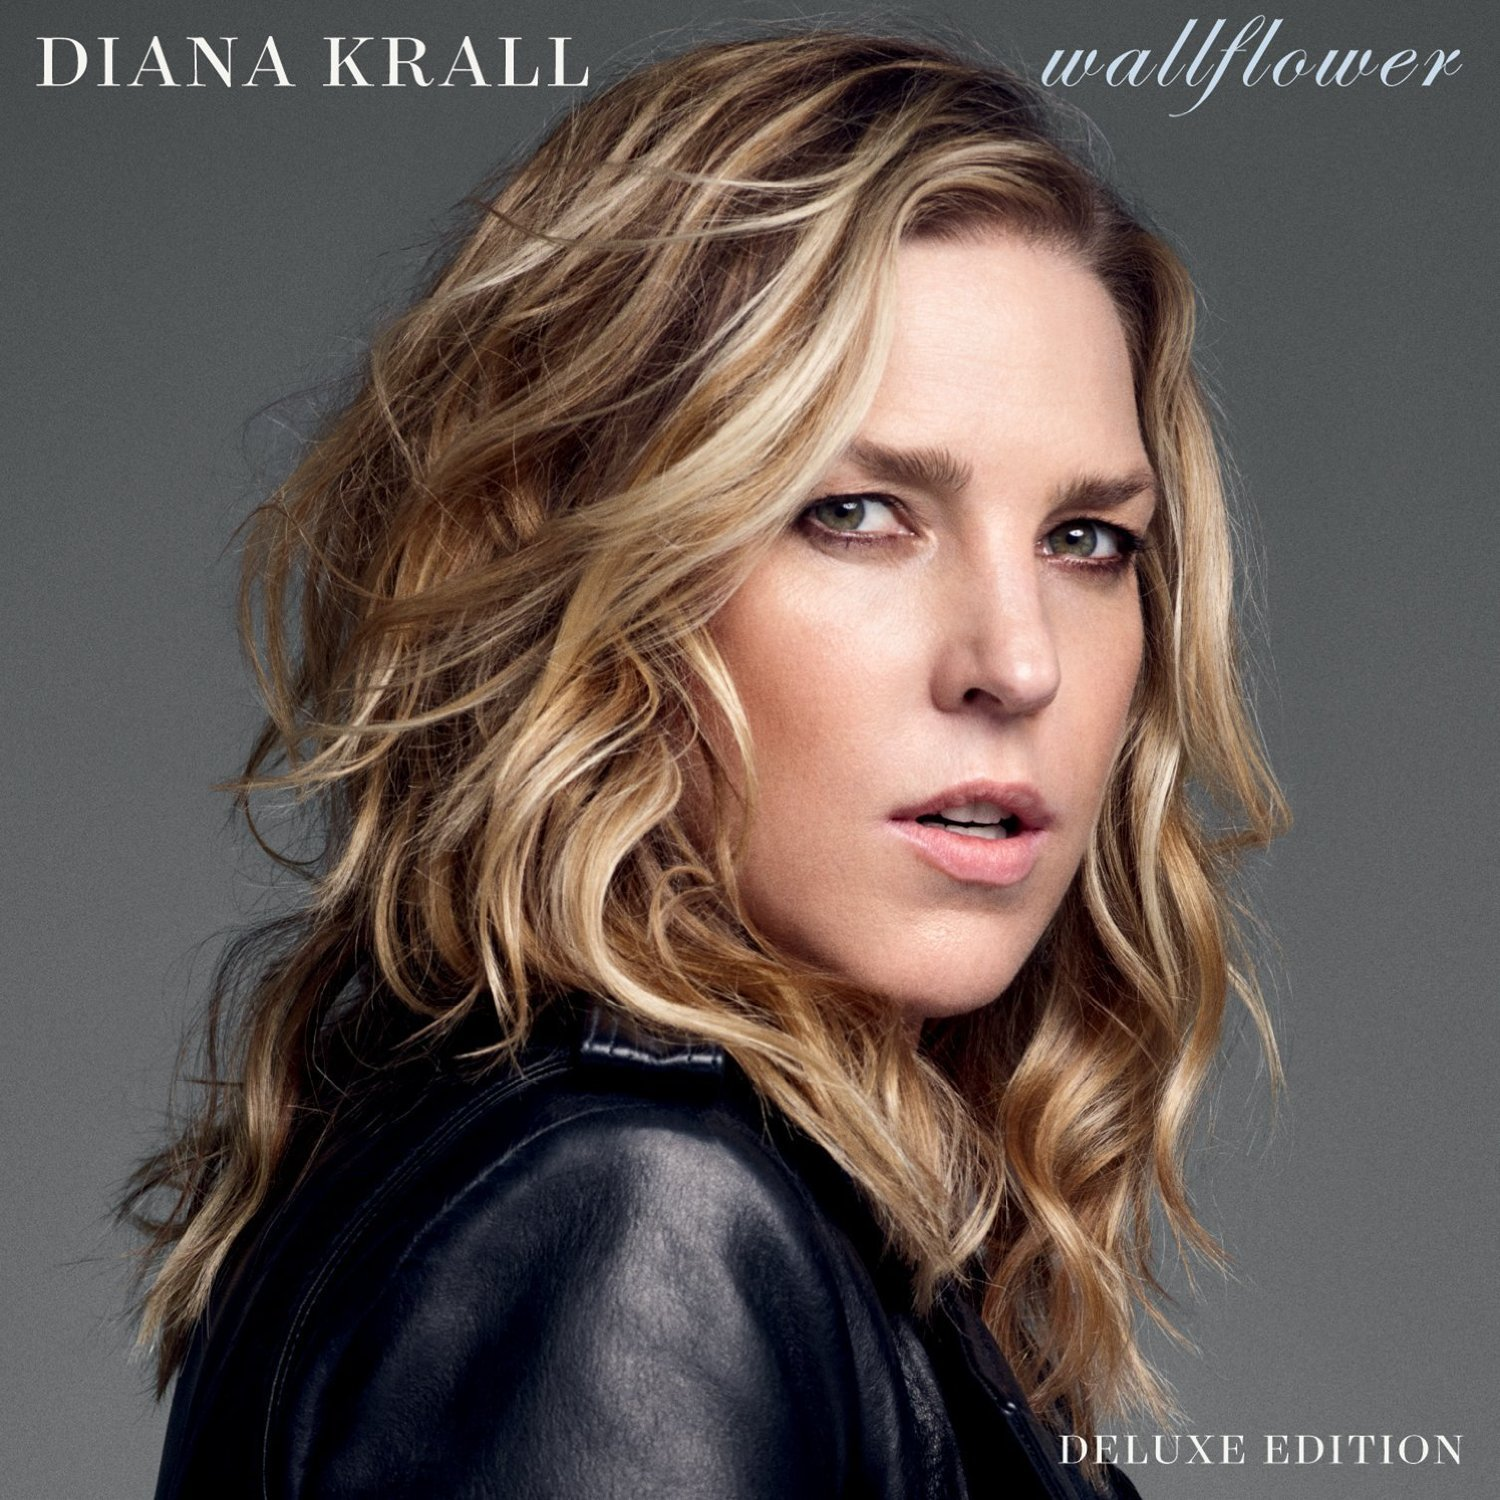 Wallflower by Diana Krall image